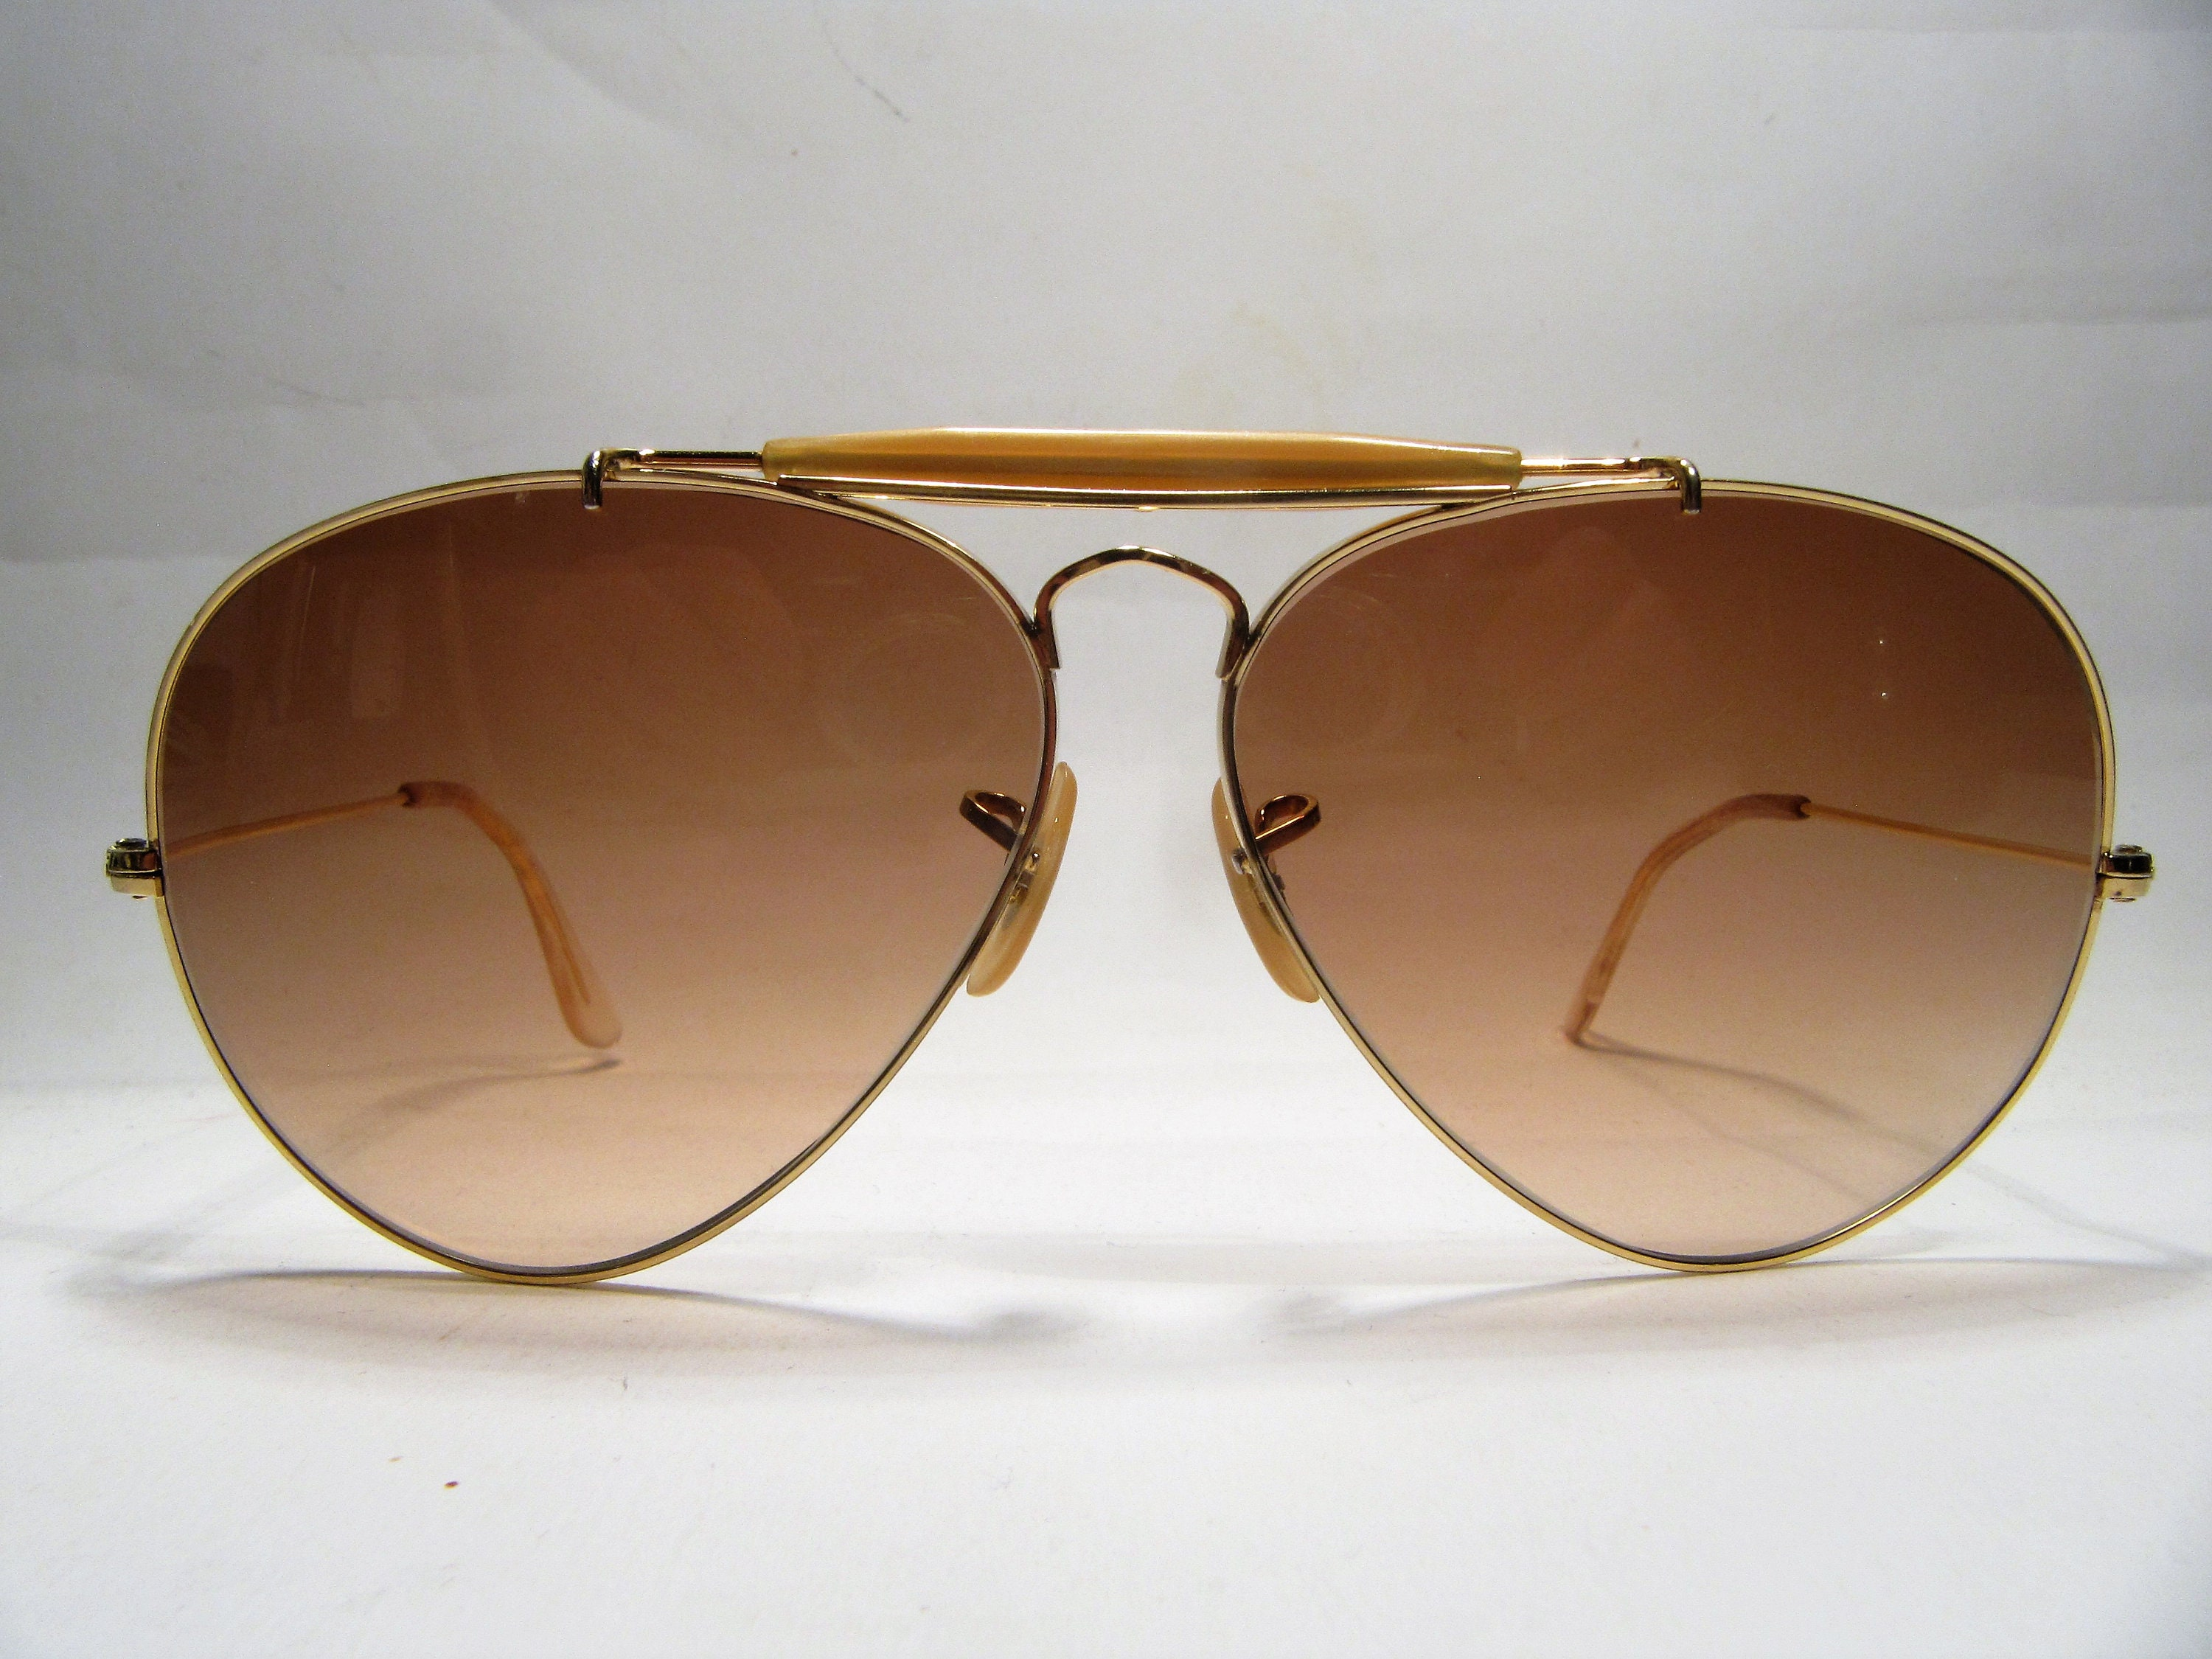 Ray Ban B & L Outdoorsman gold Metall Vintage Sonnenbrille